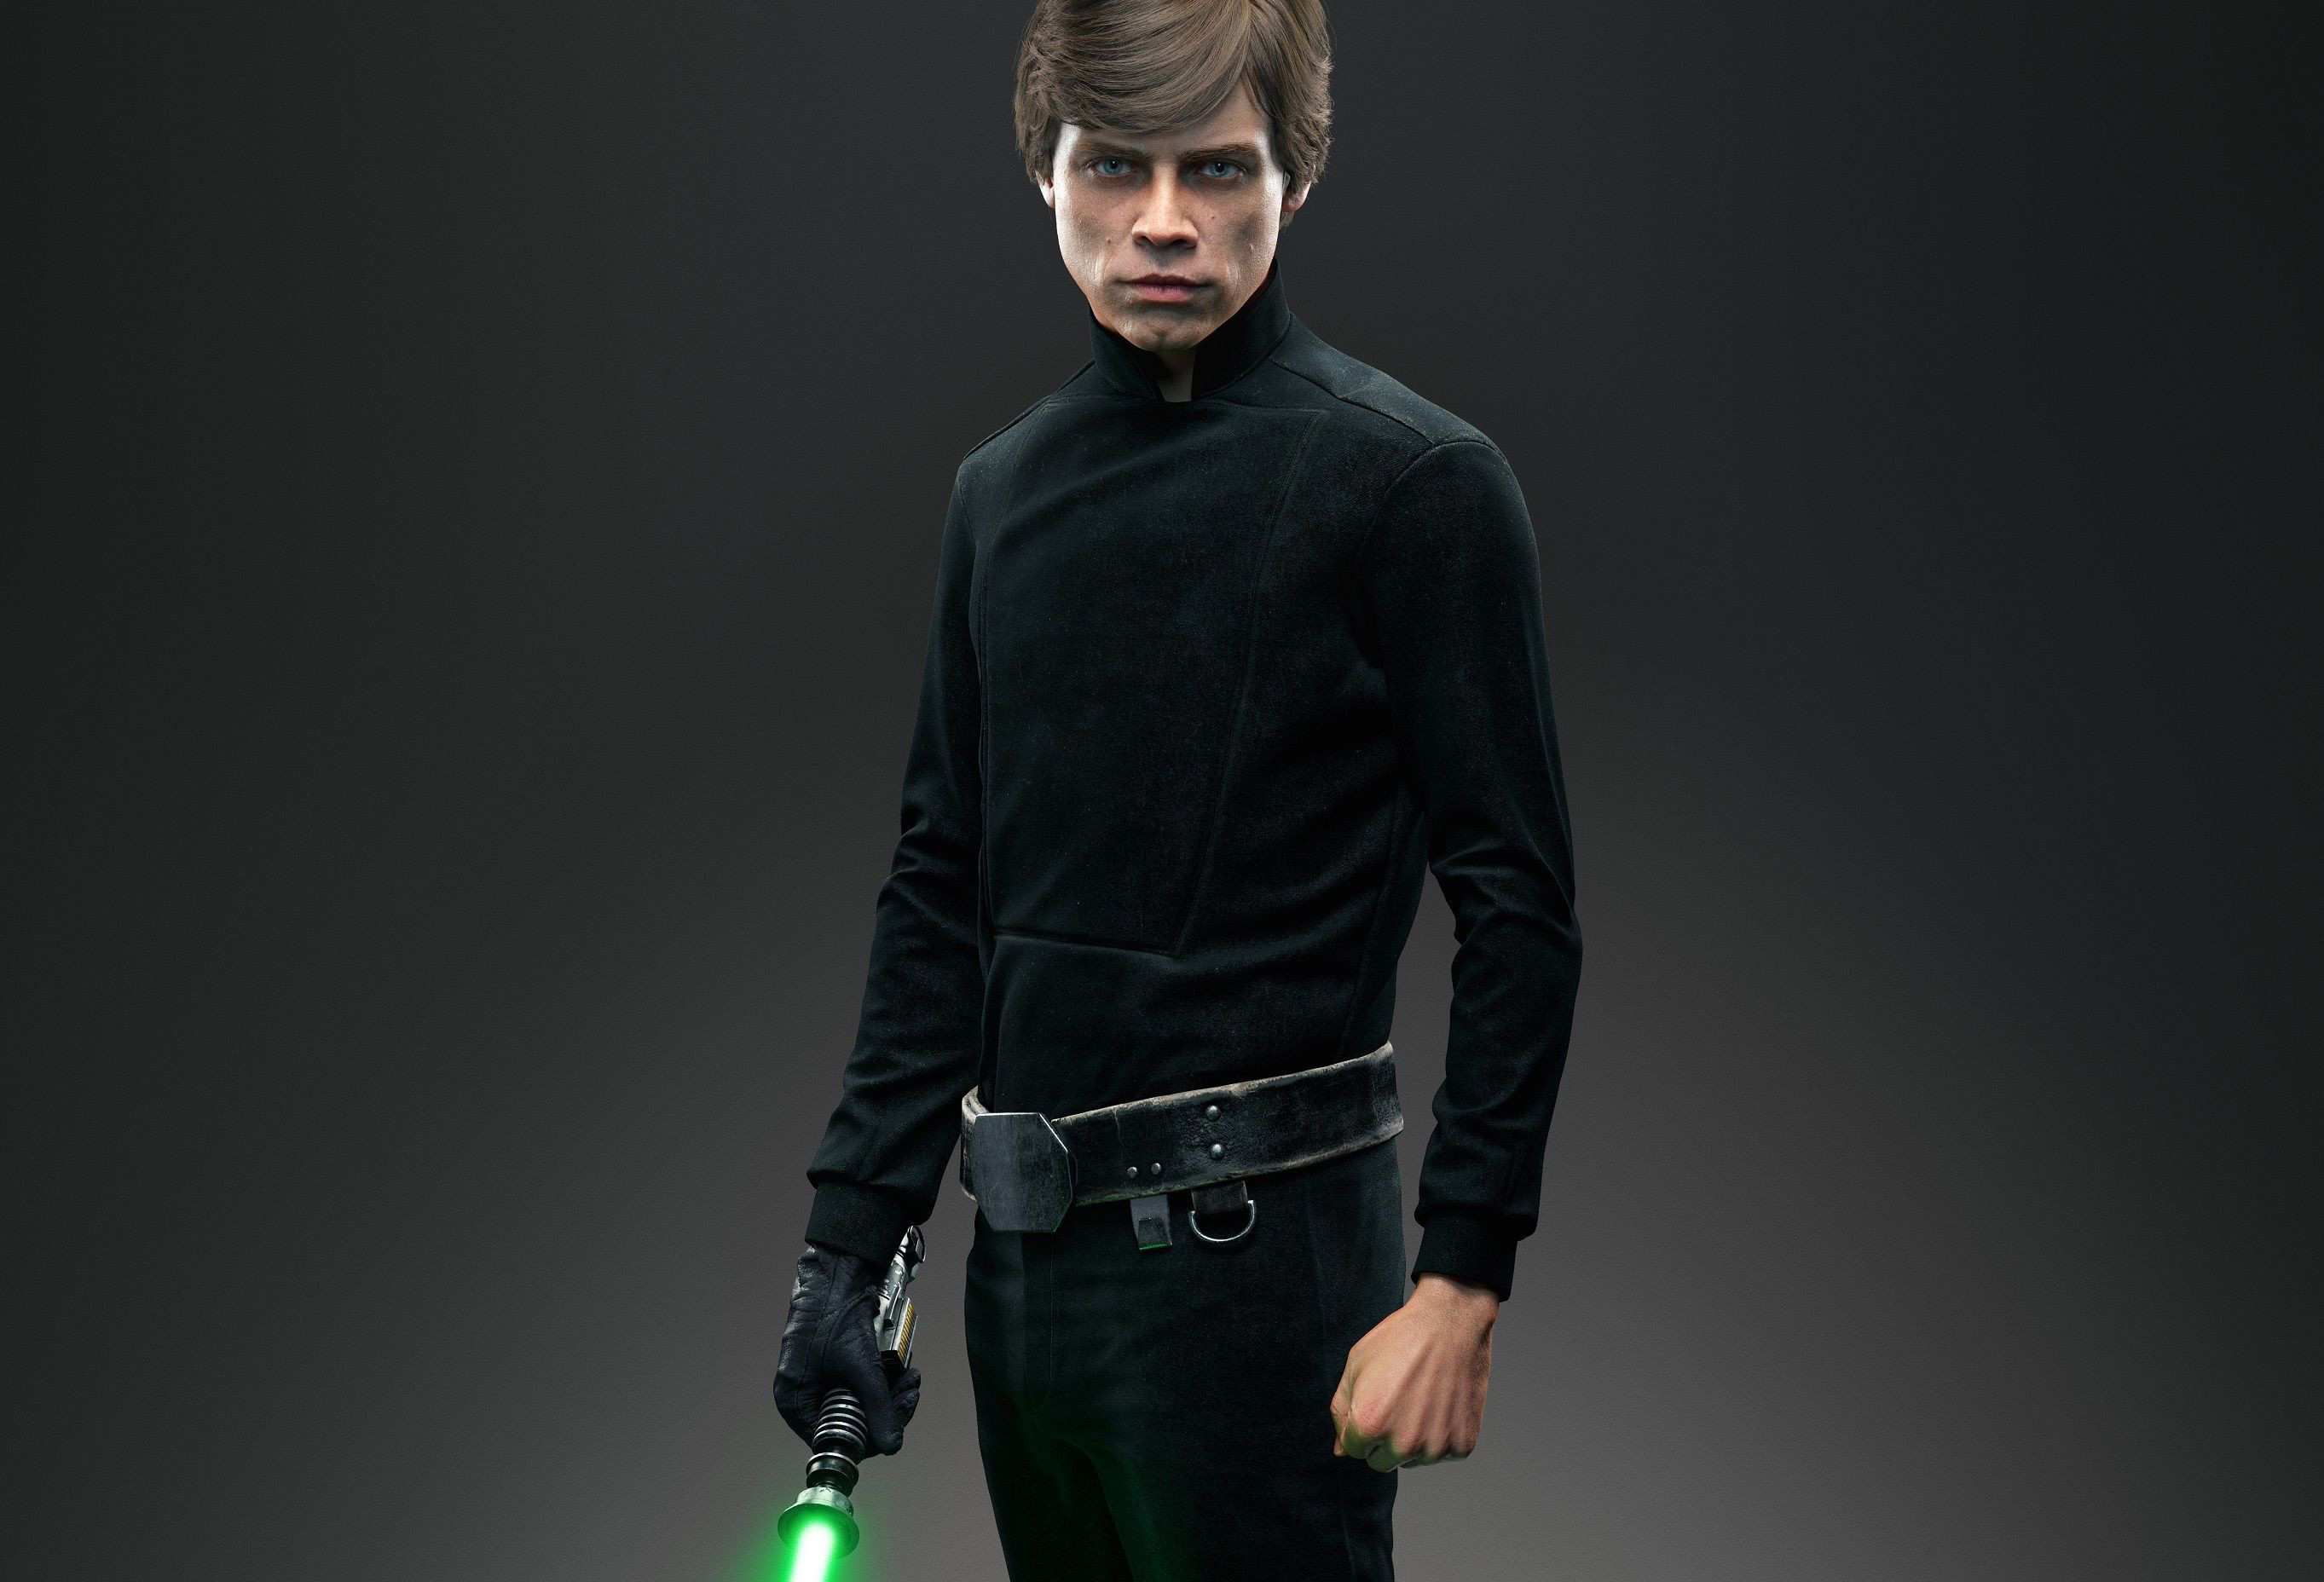 2726x1856 Wallpaper Star wars, Battlefront, Jedi, Luke skywalker